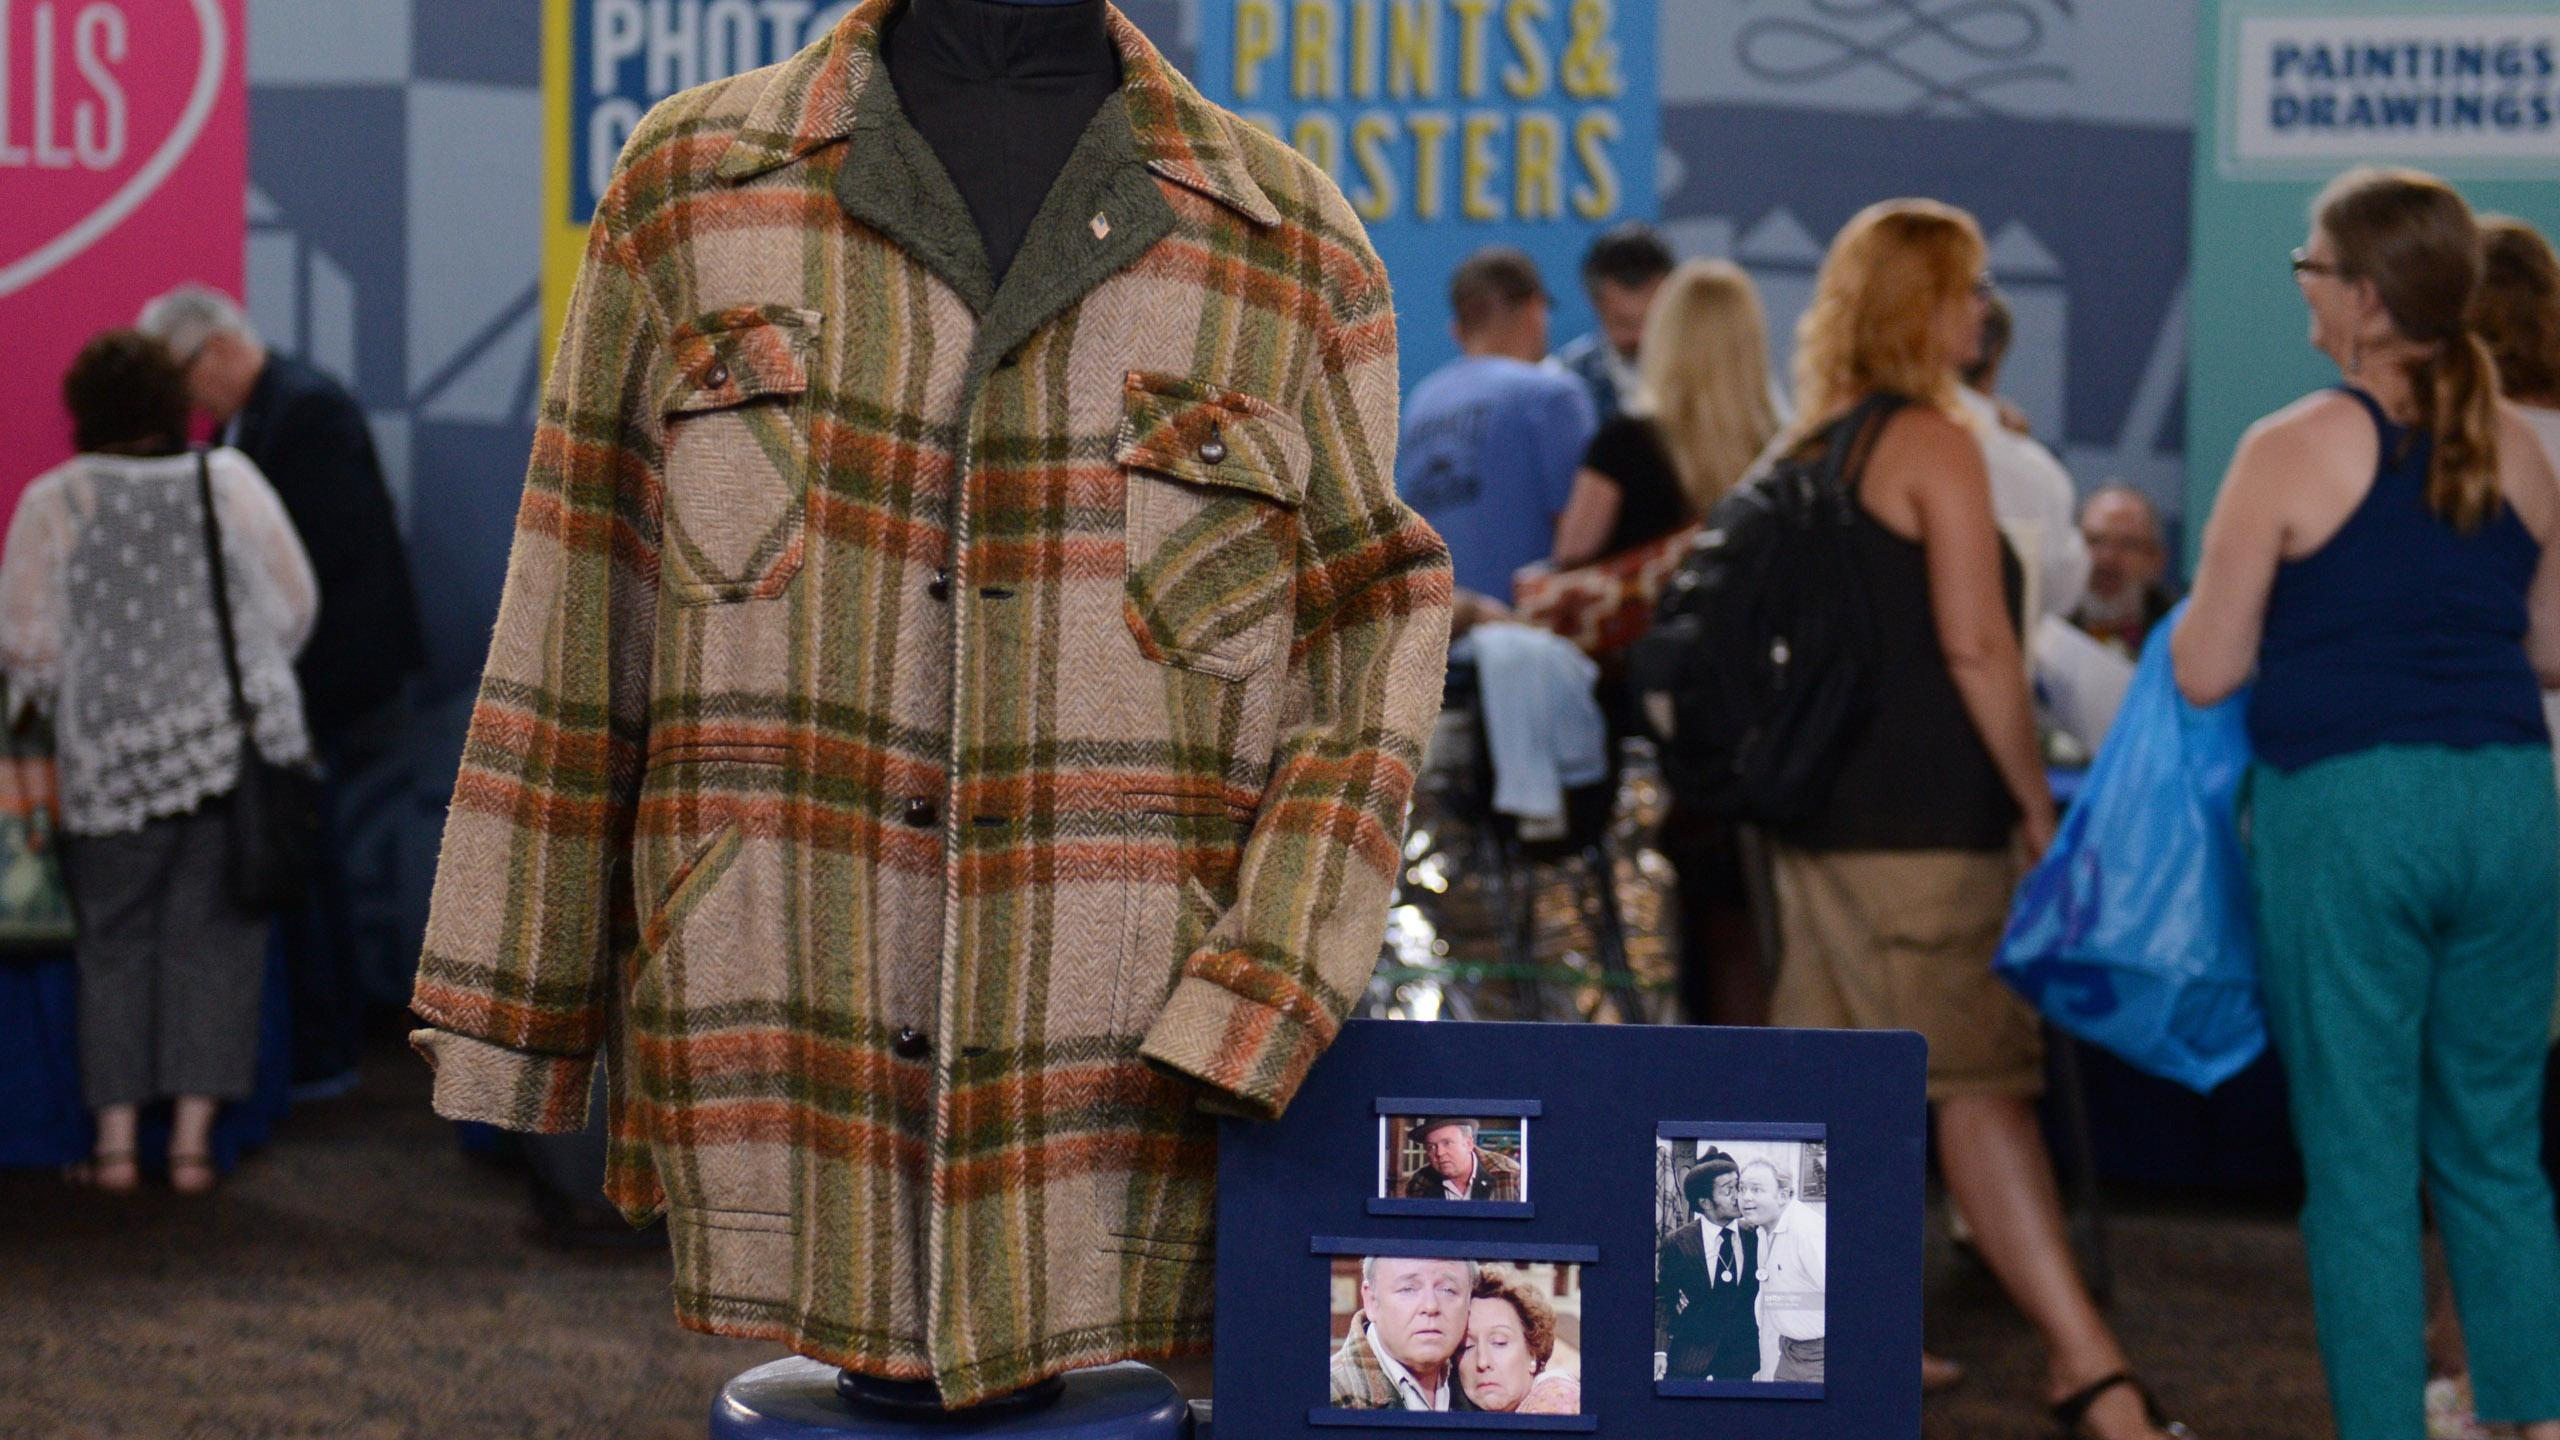 Appraisal: Carroll O'Connor's Archie Bunker Coat, ca. 1970